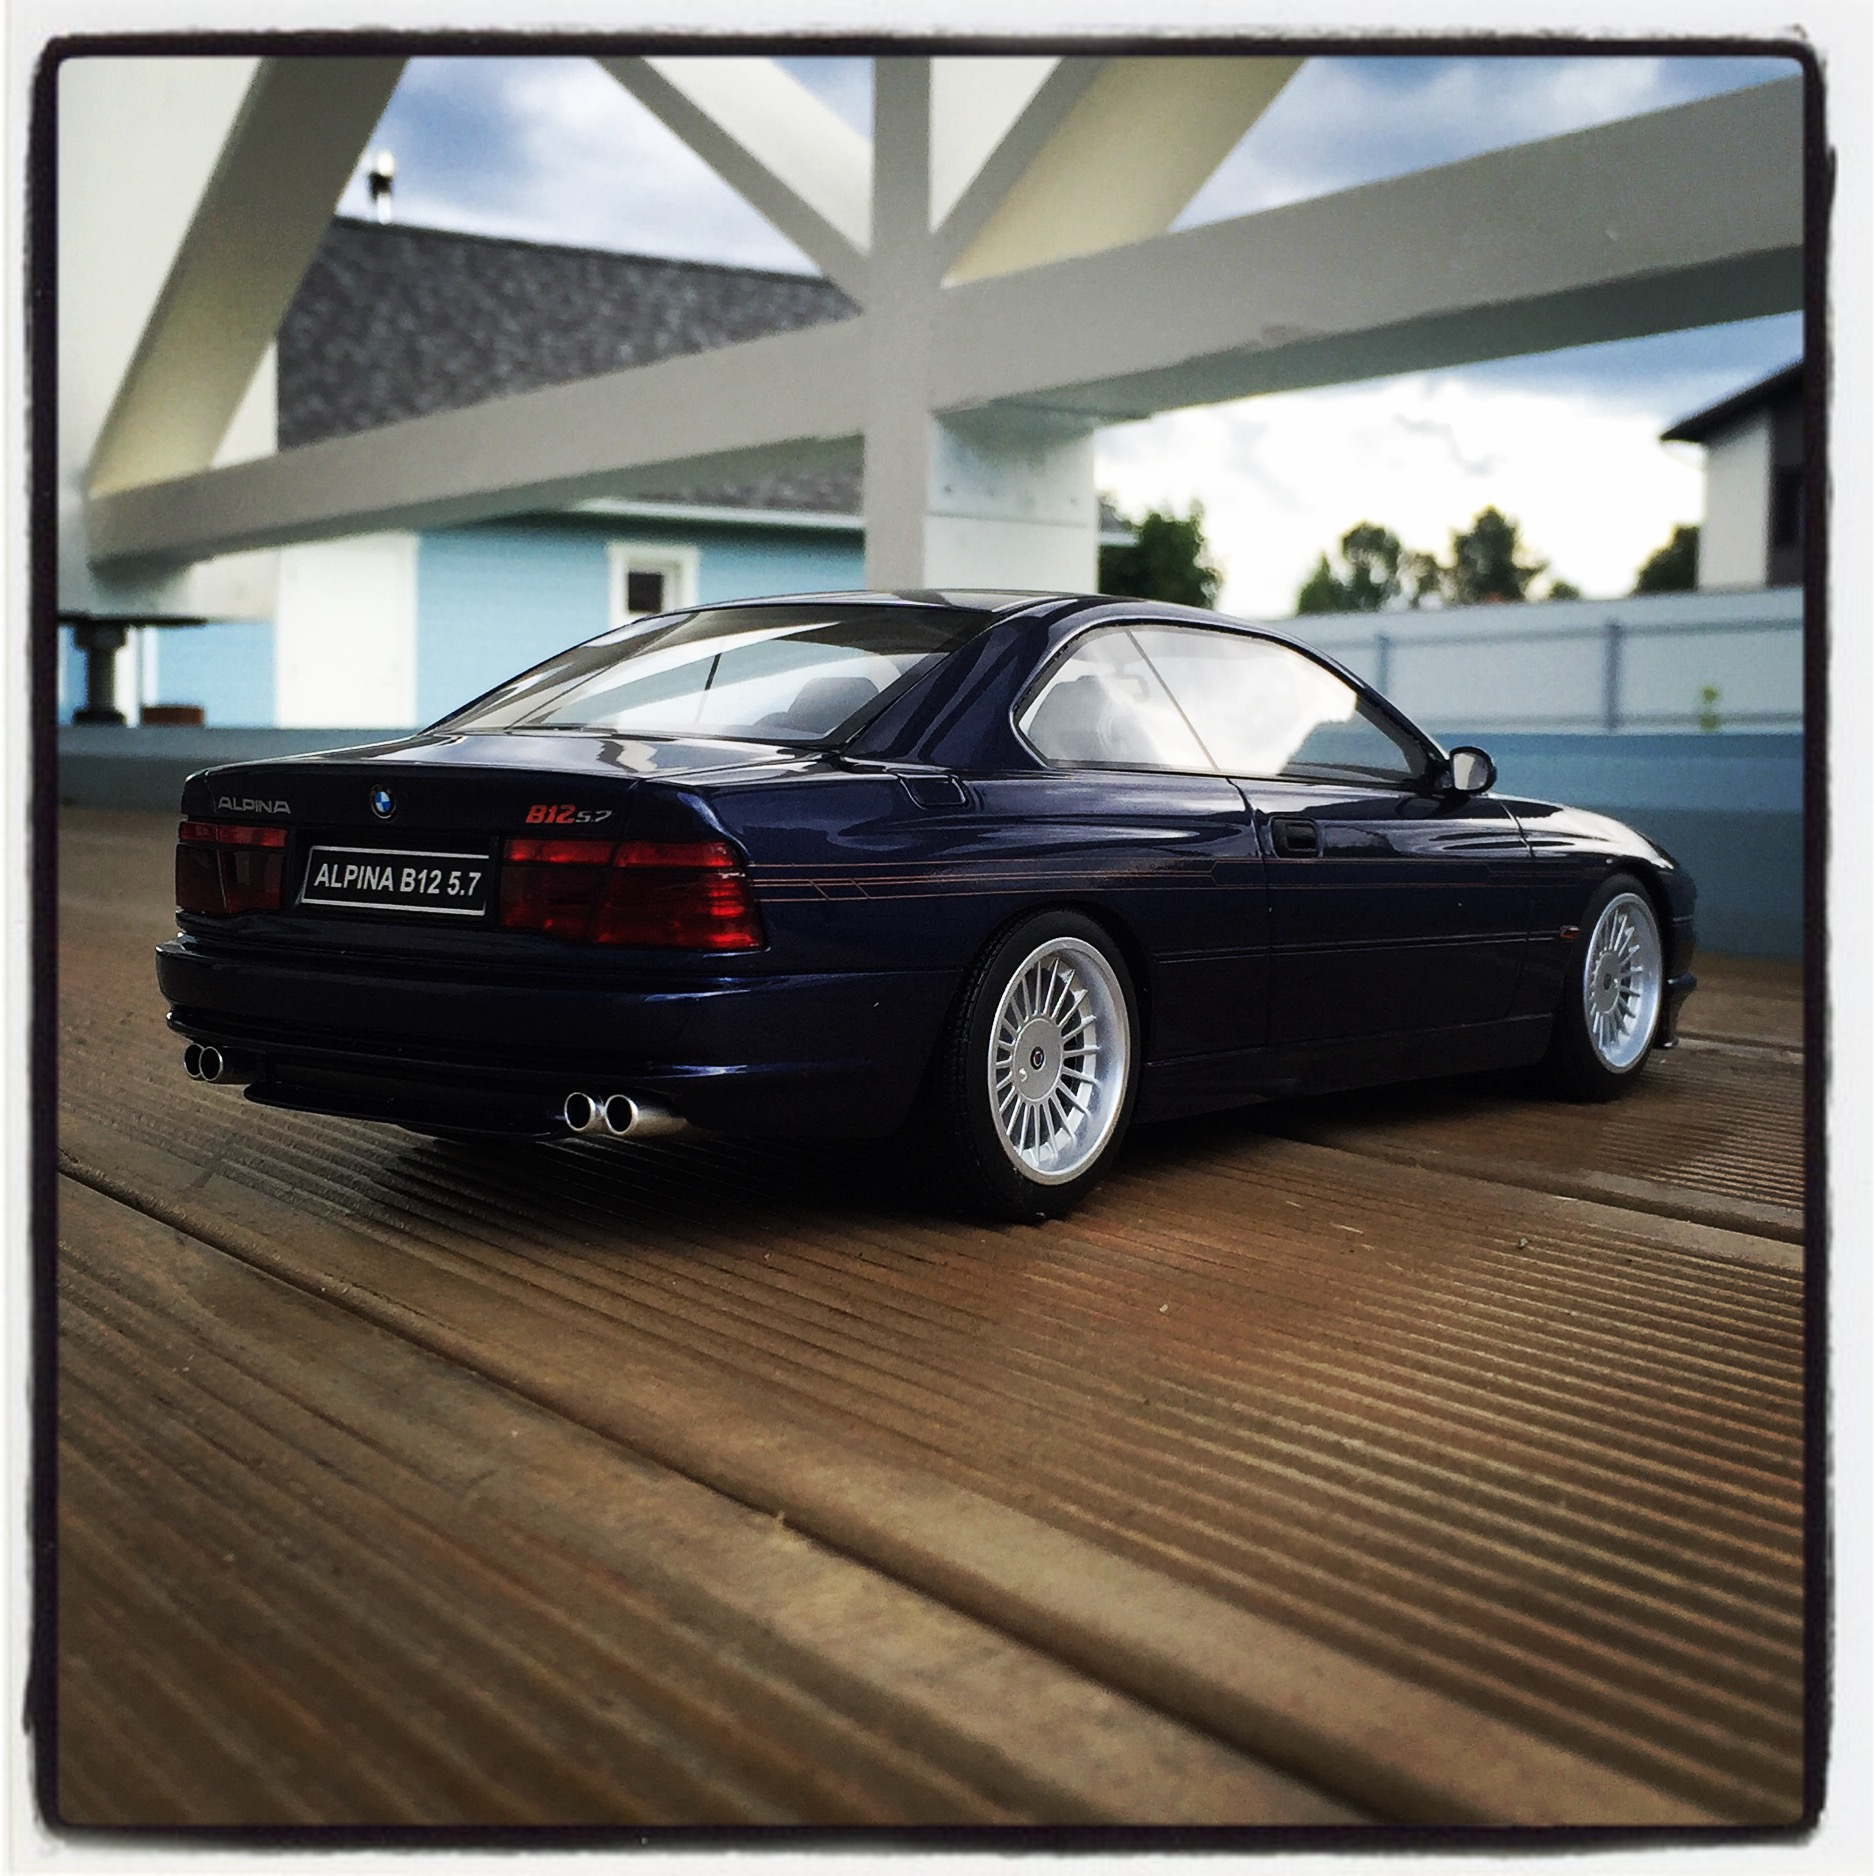 Alpina B12 5.7 (E31) le 89 of 2,000pcs. (otto)